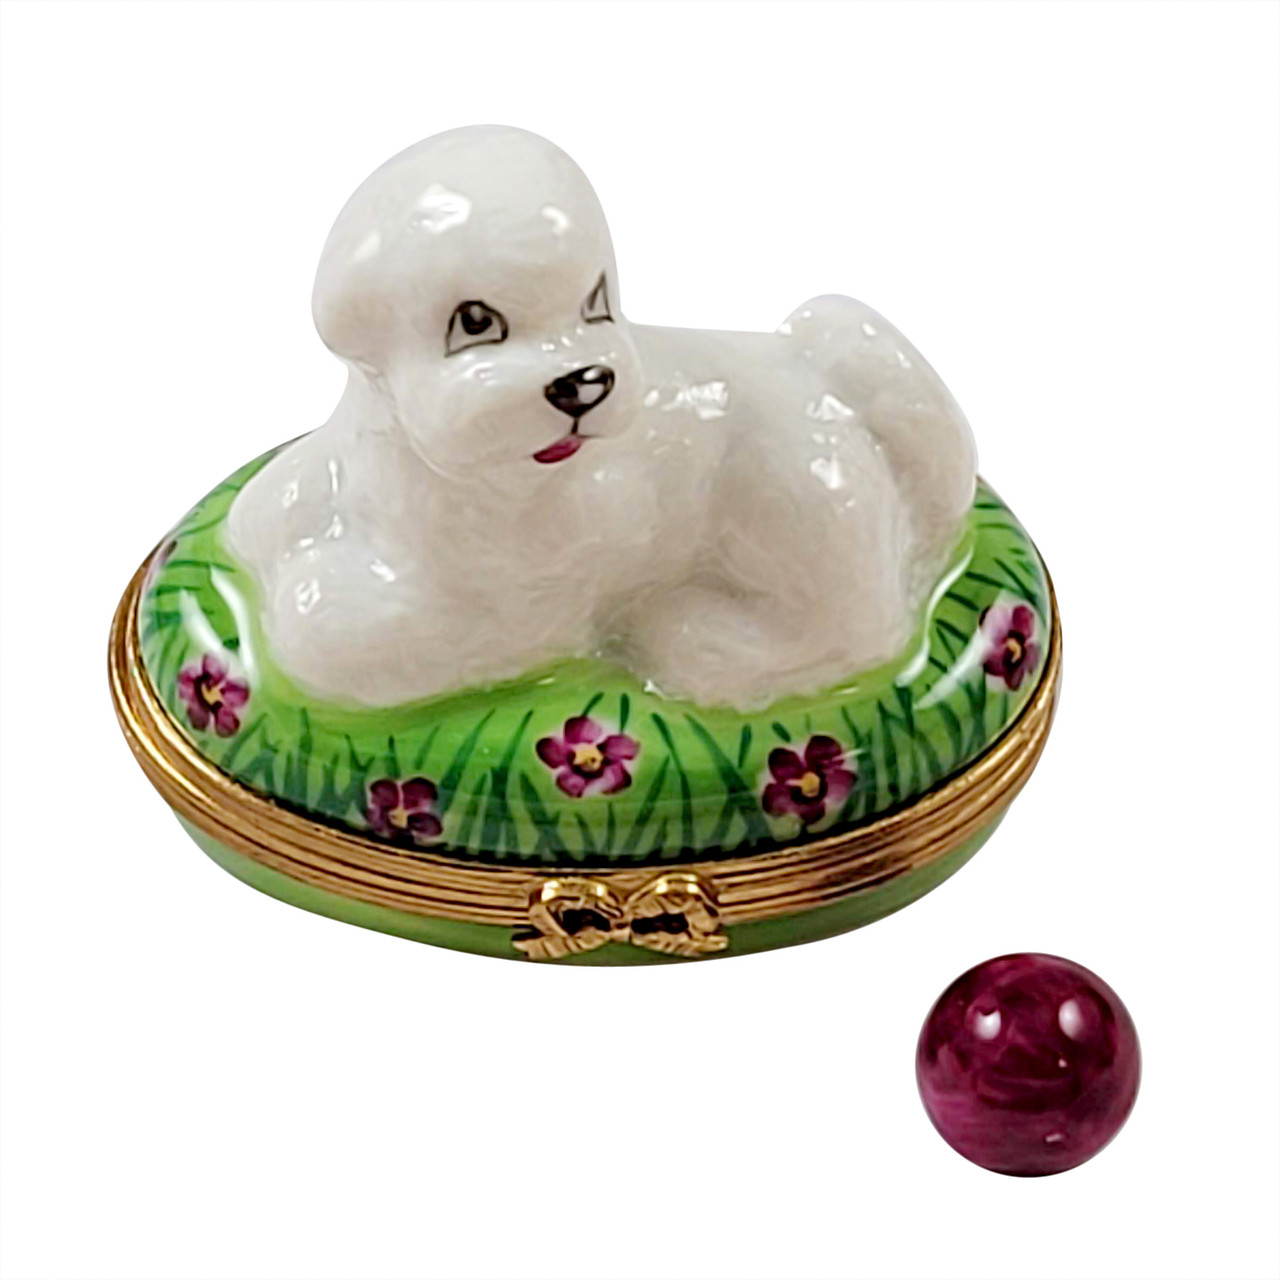 Bichon Lying Down with Removable Ball Rochard Limoges Box RD088